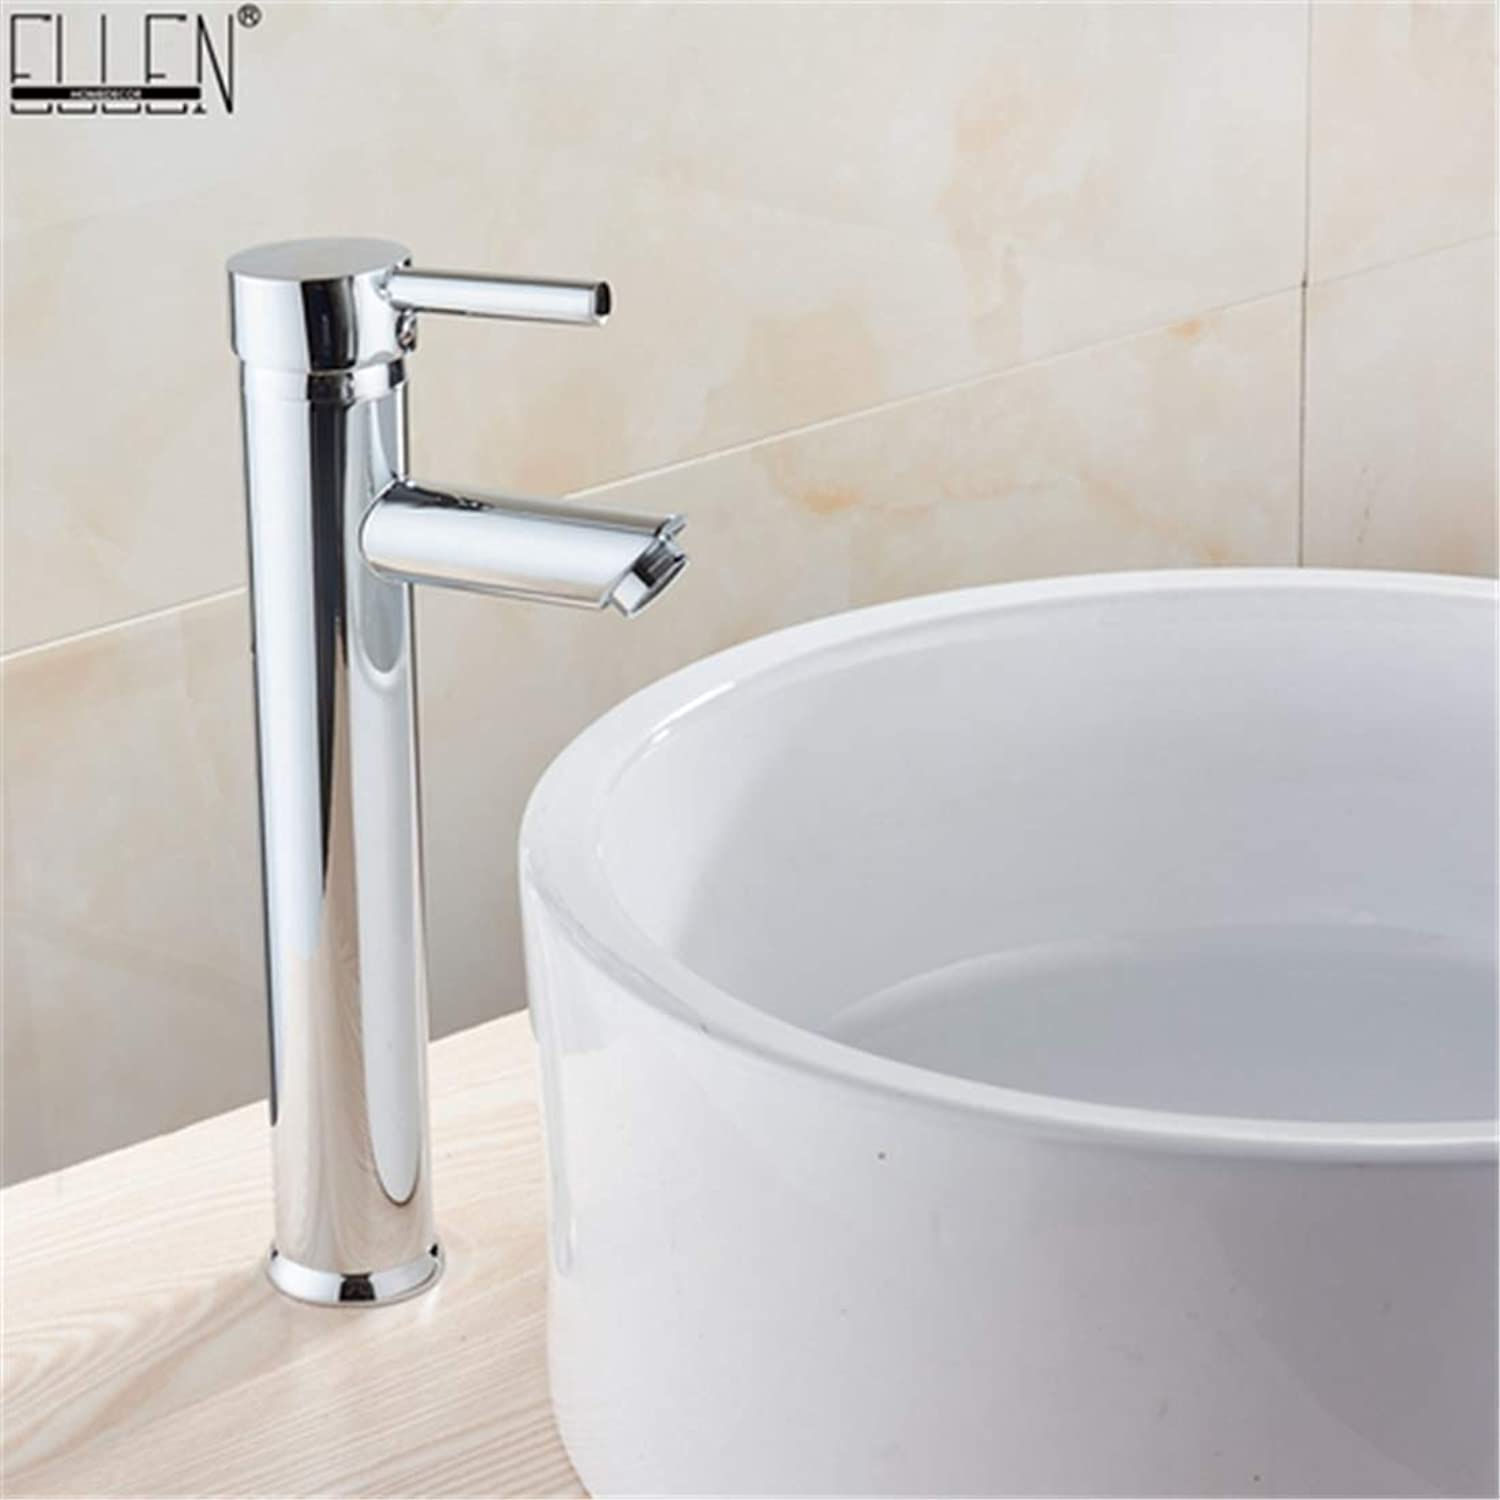 360 redation Round Solidwashbasin Hot Water Tap and Cold Water Mixer Tap Chrome Finish